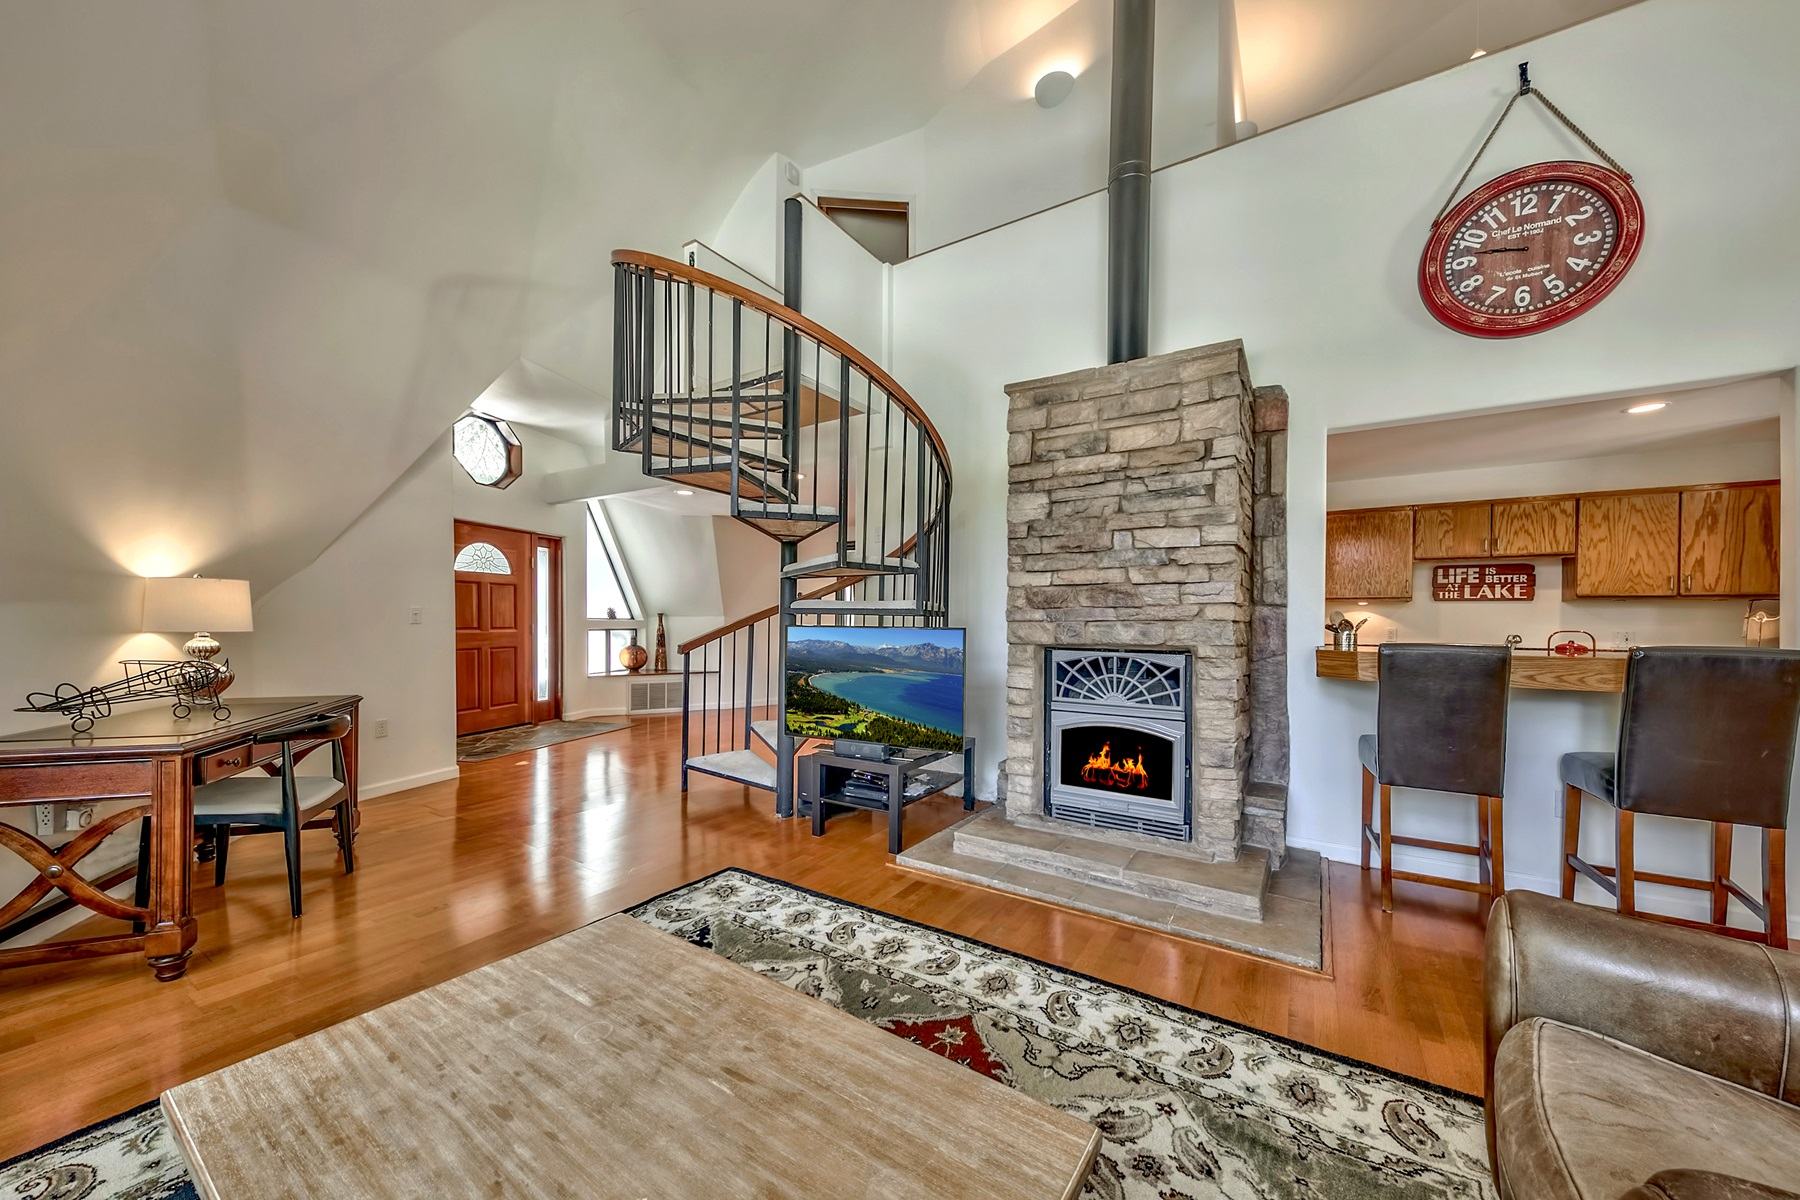 Property for Active at 11842 Chamonix Rd, Truckee, CA 96161 11842 Chamonix Rd Truckee, California 96161 United States